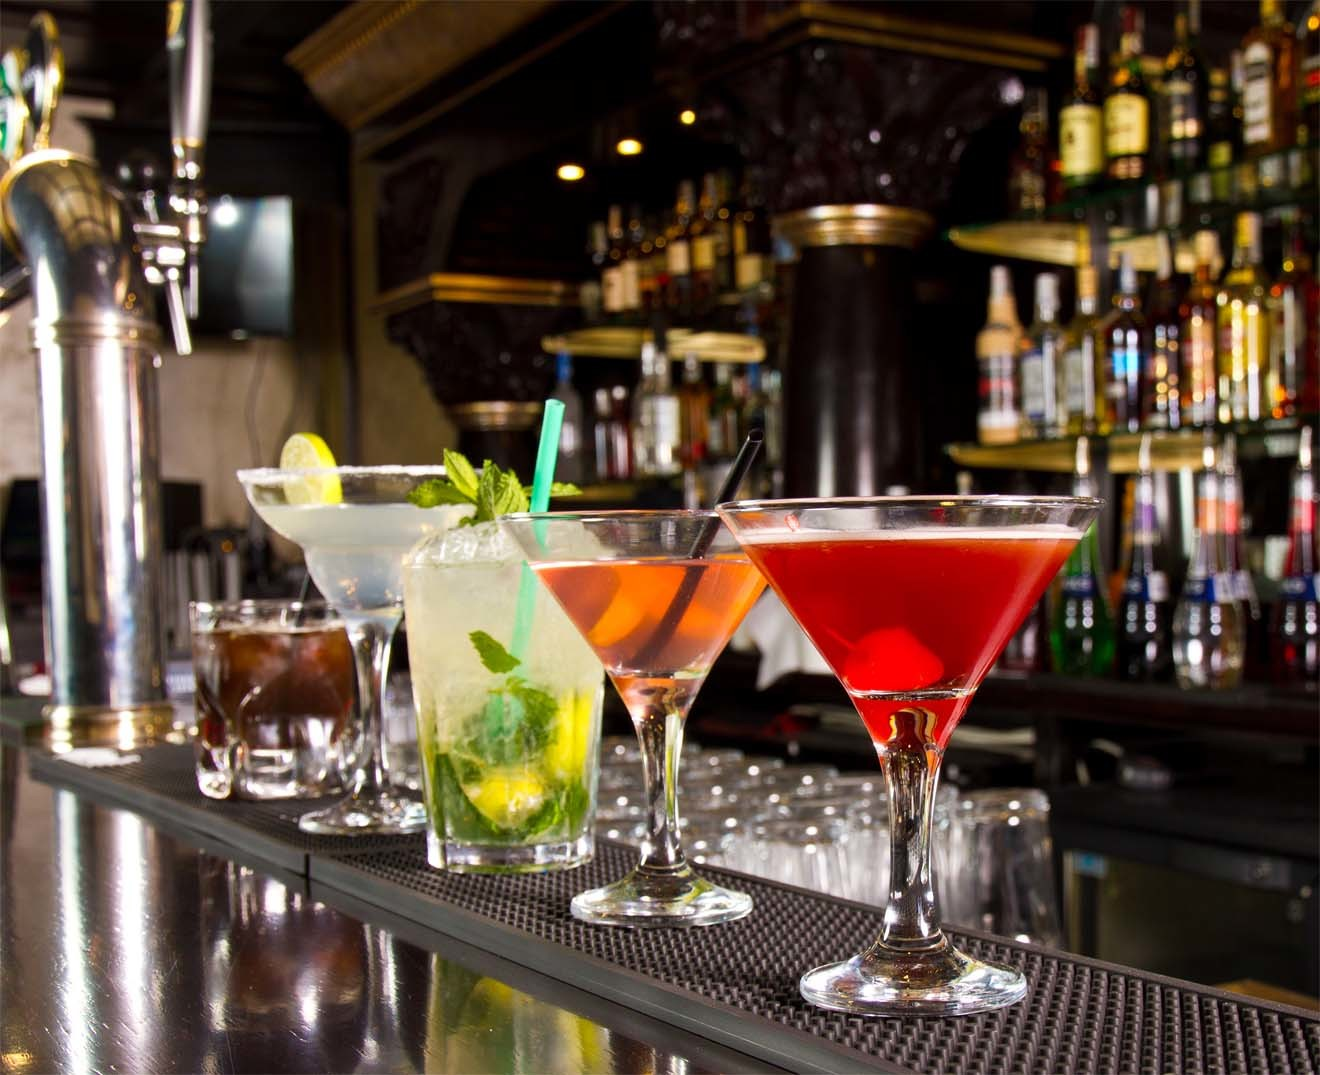 Cocktails-on-a-Bar.jpg?mtime=20190125120932#asset:4260